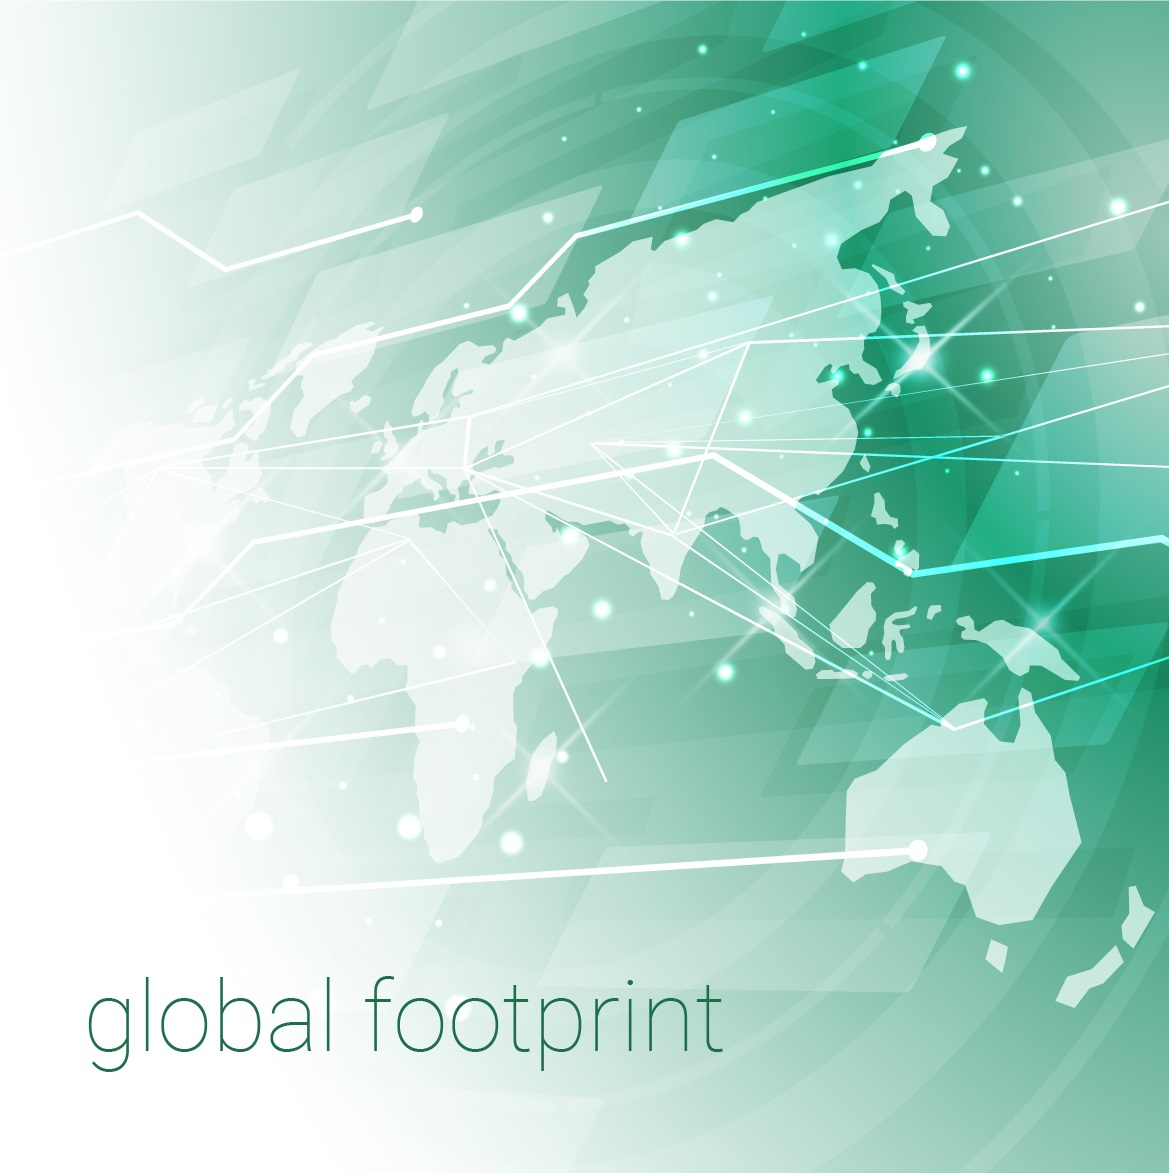 Index-6 global footprint